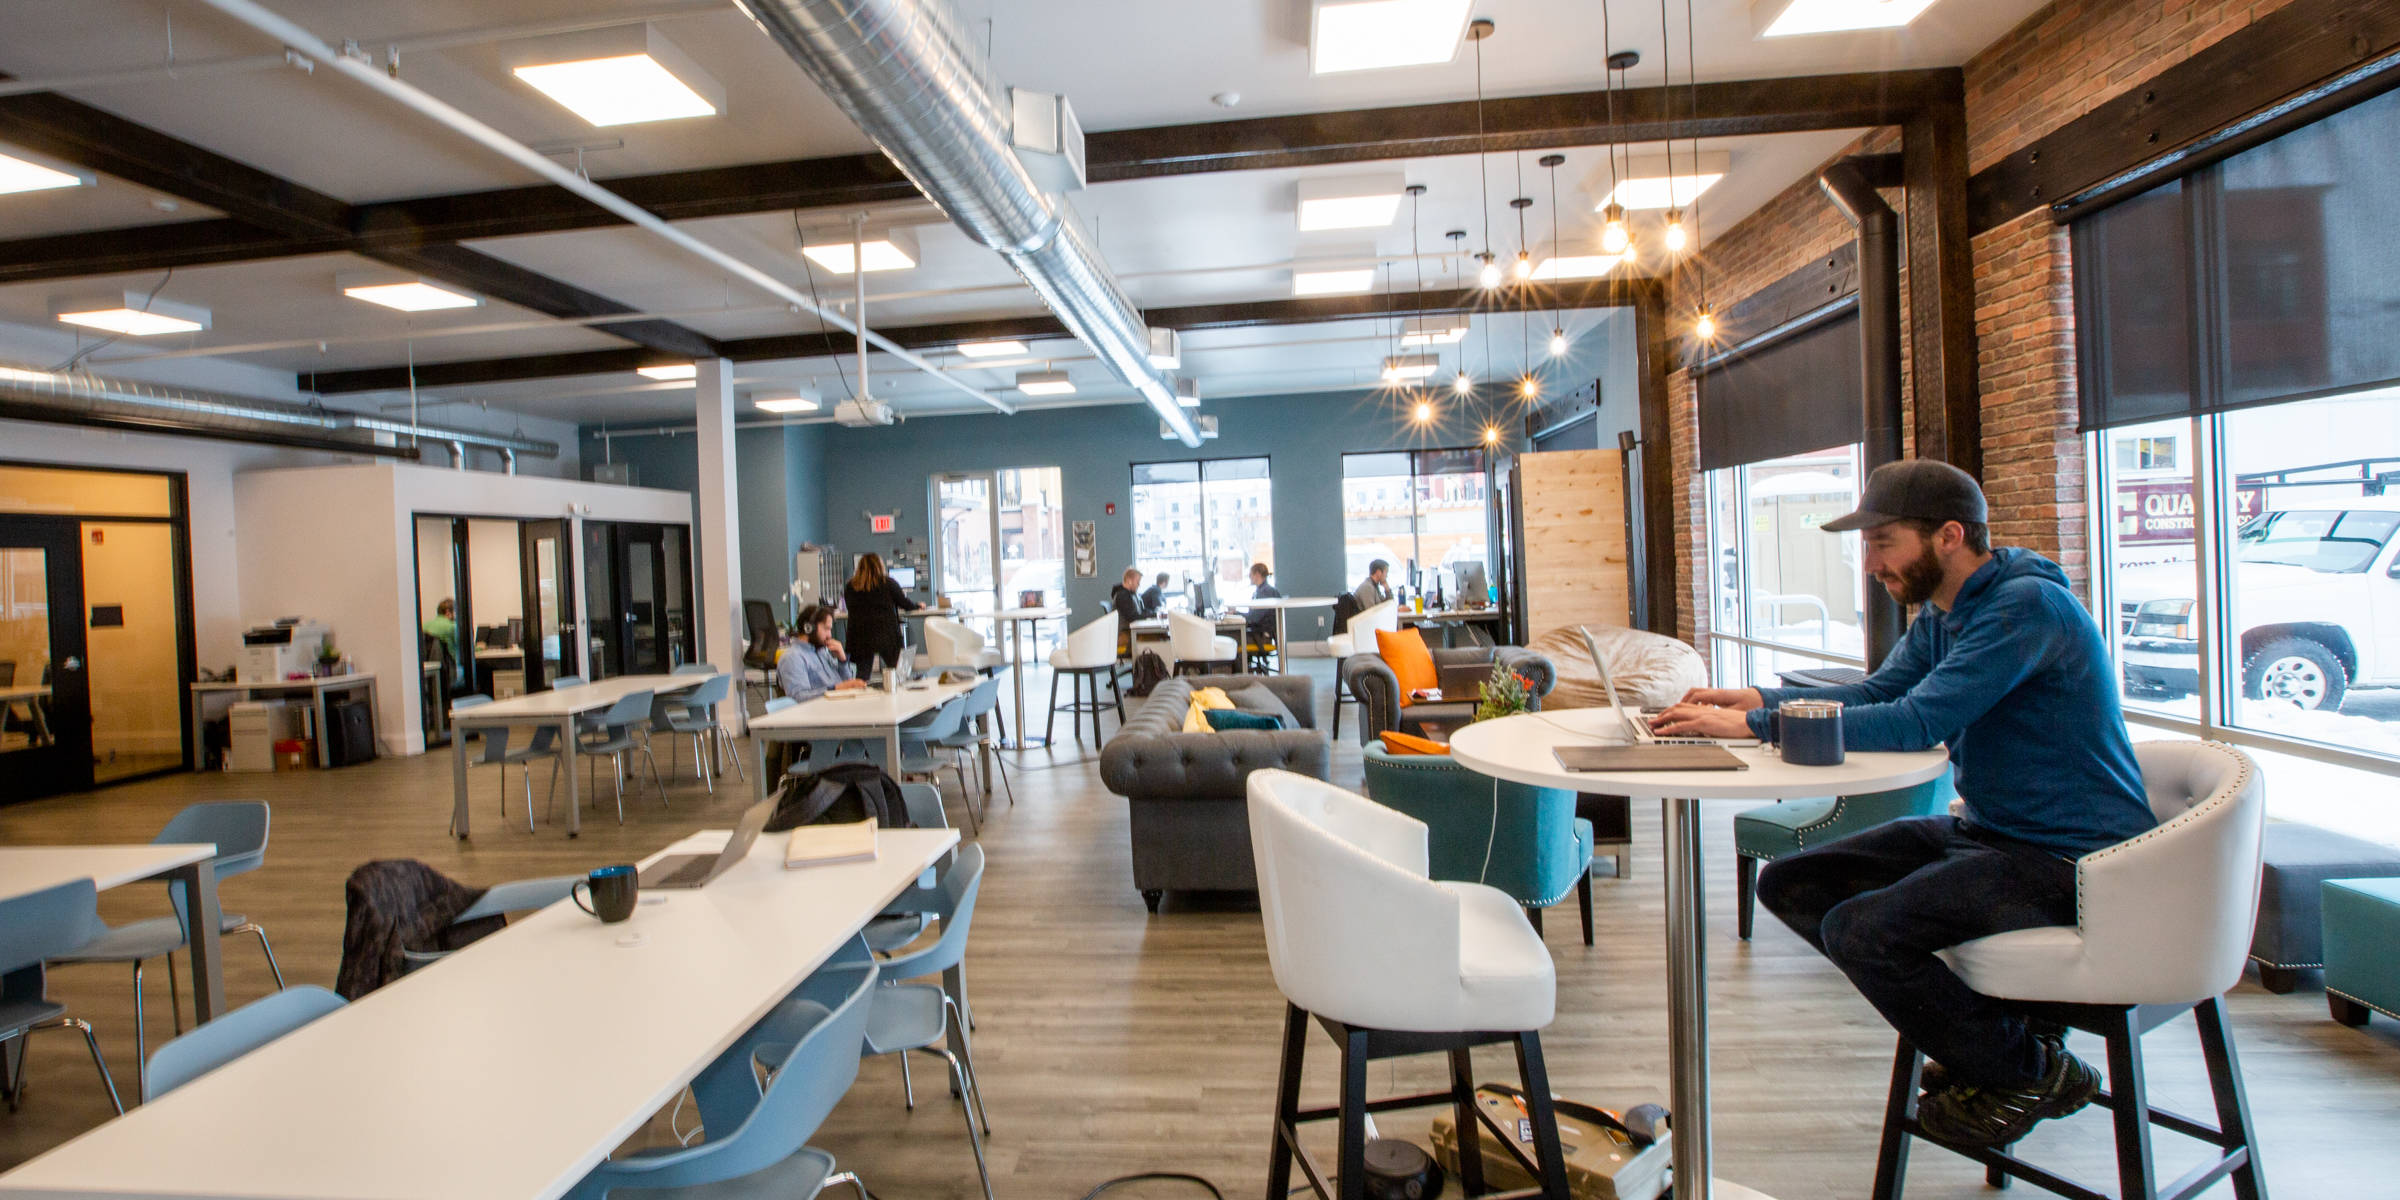 Coworking Space in Missoula, Montana - C3 WorkLounge Community Area